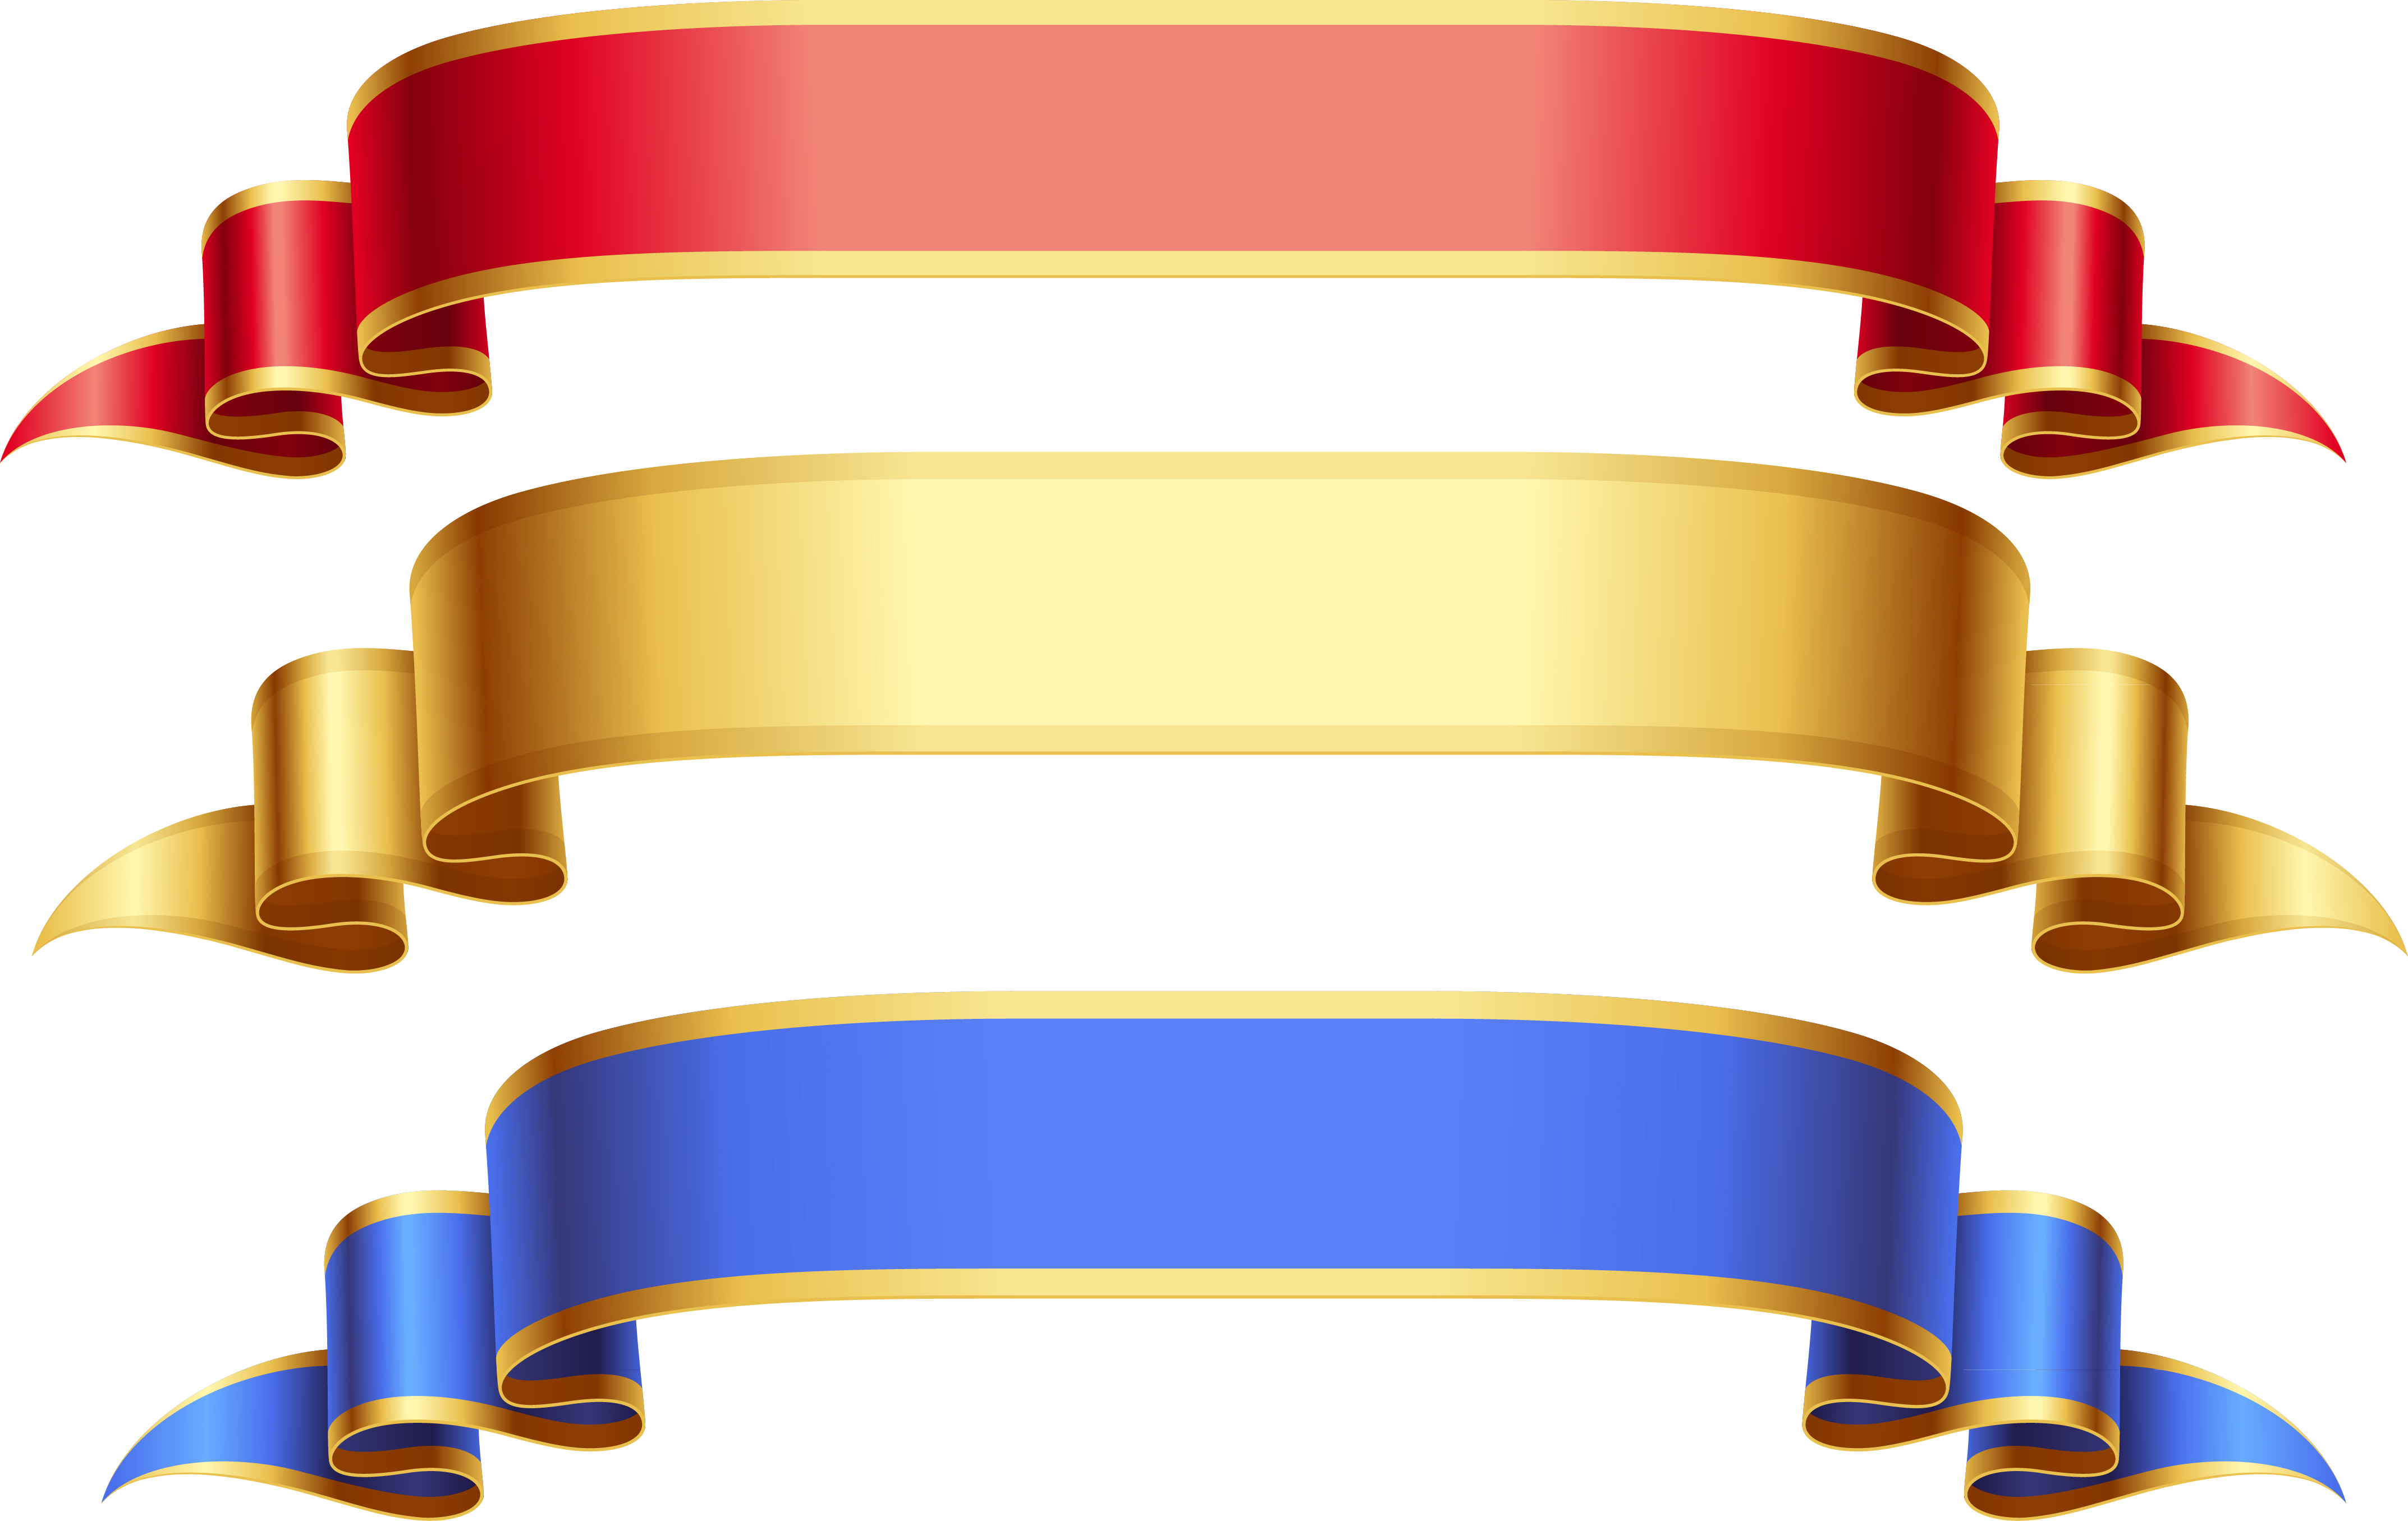 Ribbon banner png. Red gold blue free